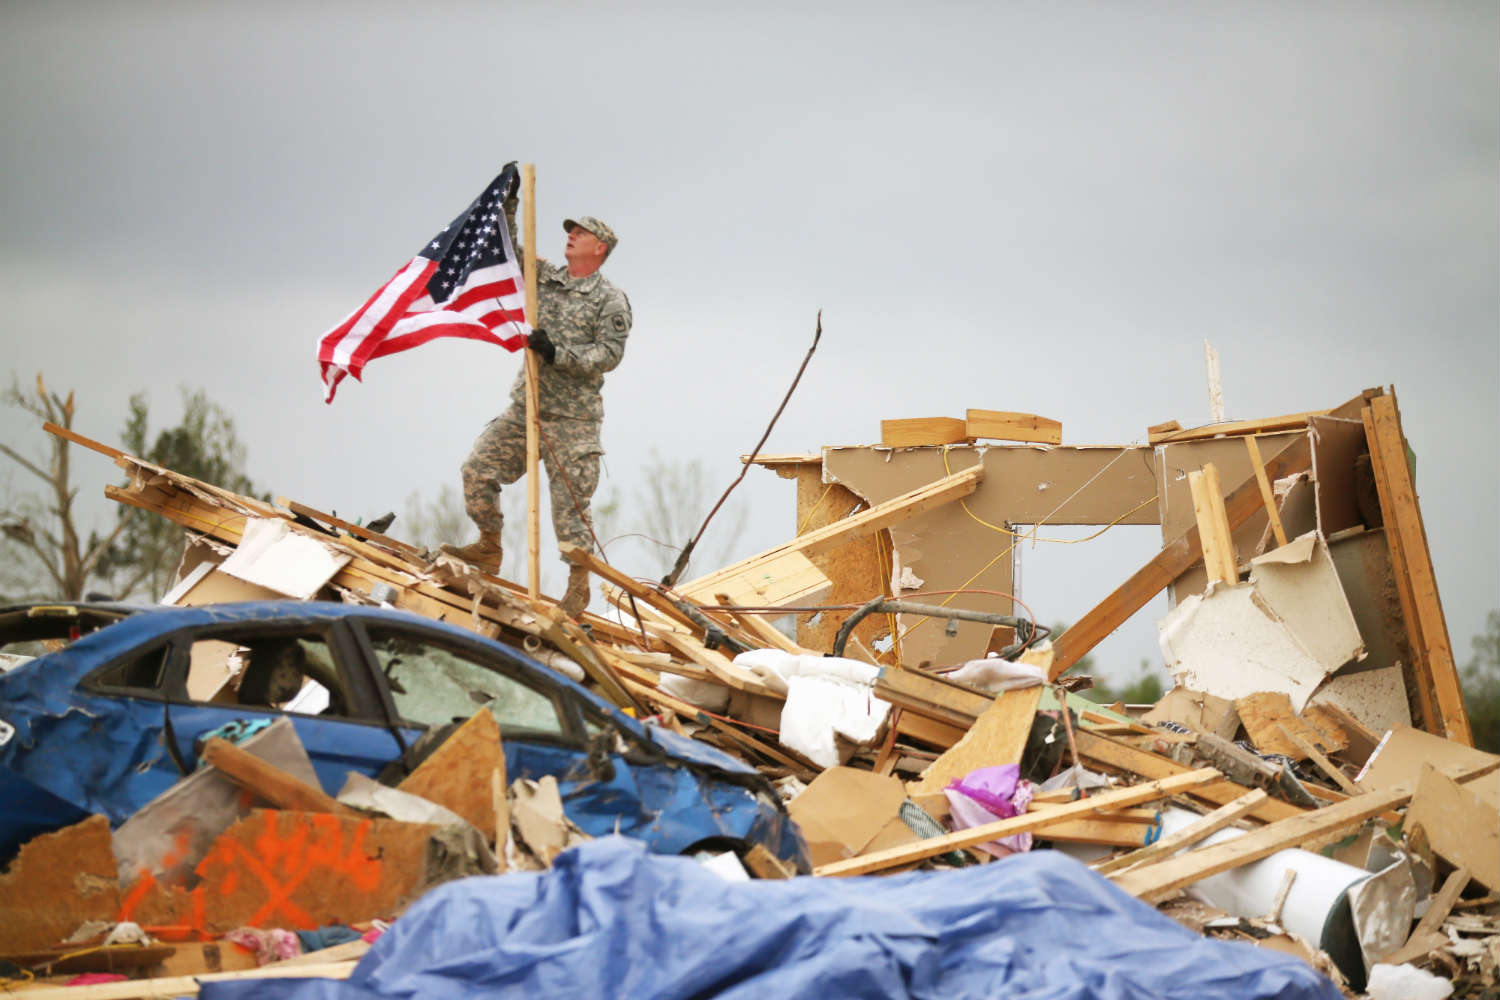 Deadly tornadoes devastated the town of Vilonia, Arkansas on Apr. 27